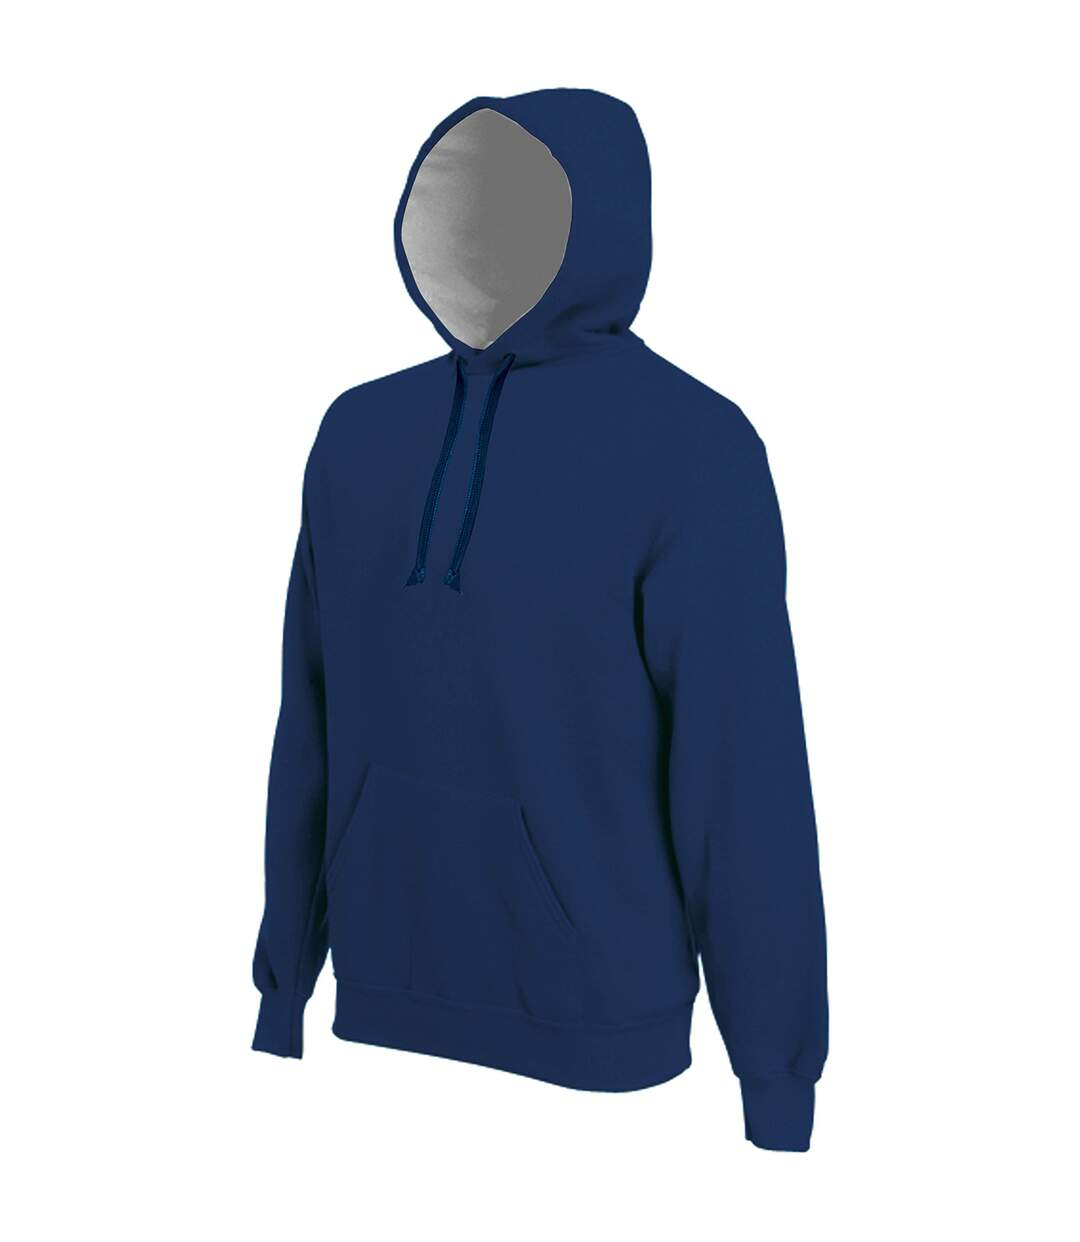 Kariban Mens Heavy Contrast Hooded Sweatshirt / Hoodie (Navy) - UTRW717